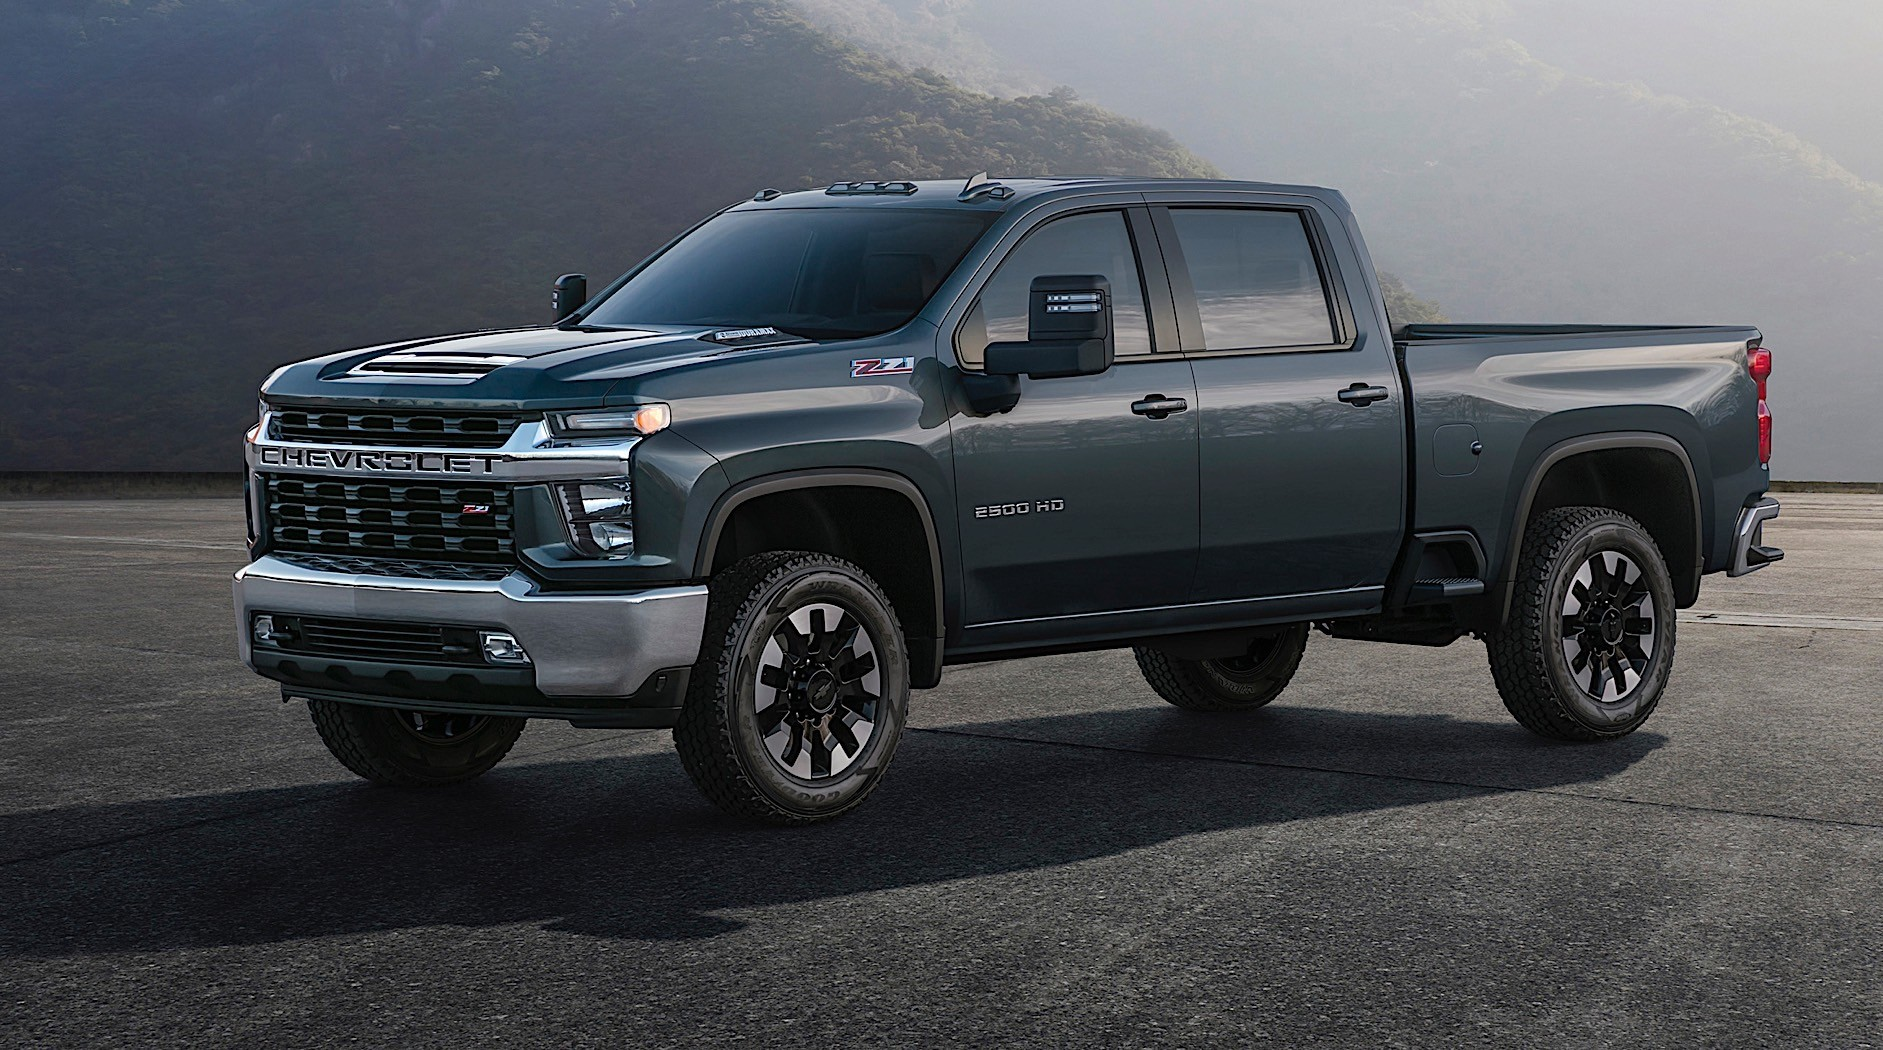 2020 Chevrolet Silverado Hd Breaks Cover First Details For 2023 Chevy Silverado Electric Pickup Confirmed 400 Miles Of Range